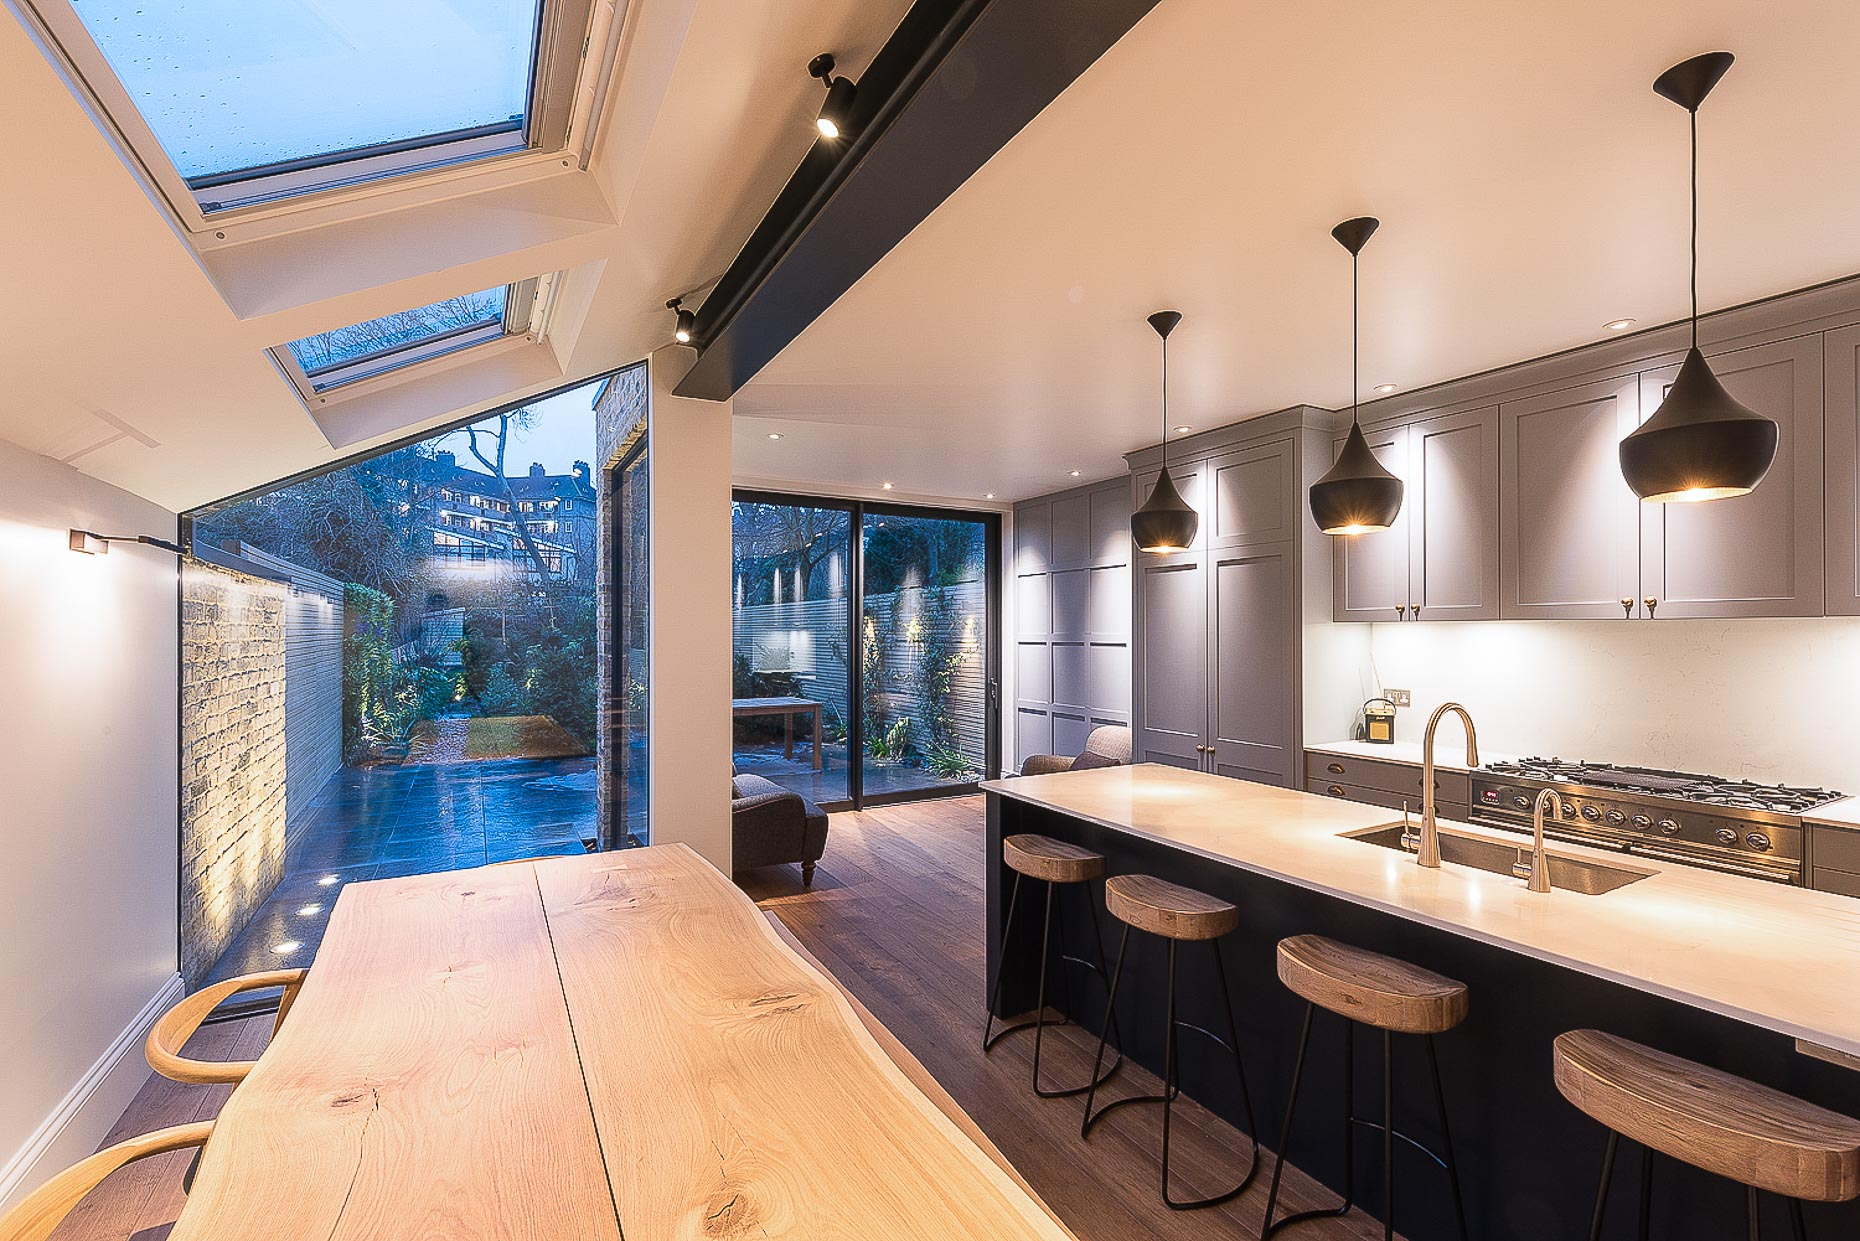 kitchen-extension-london-modern-design-pendant-lighting-interior-photo-16